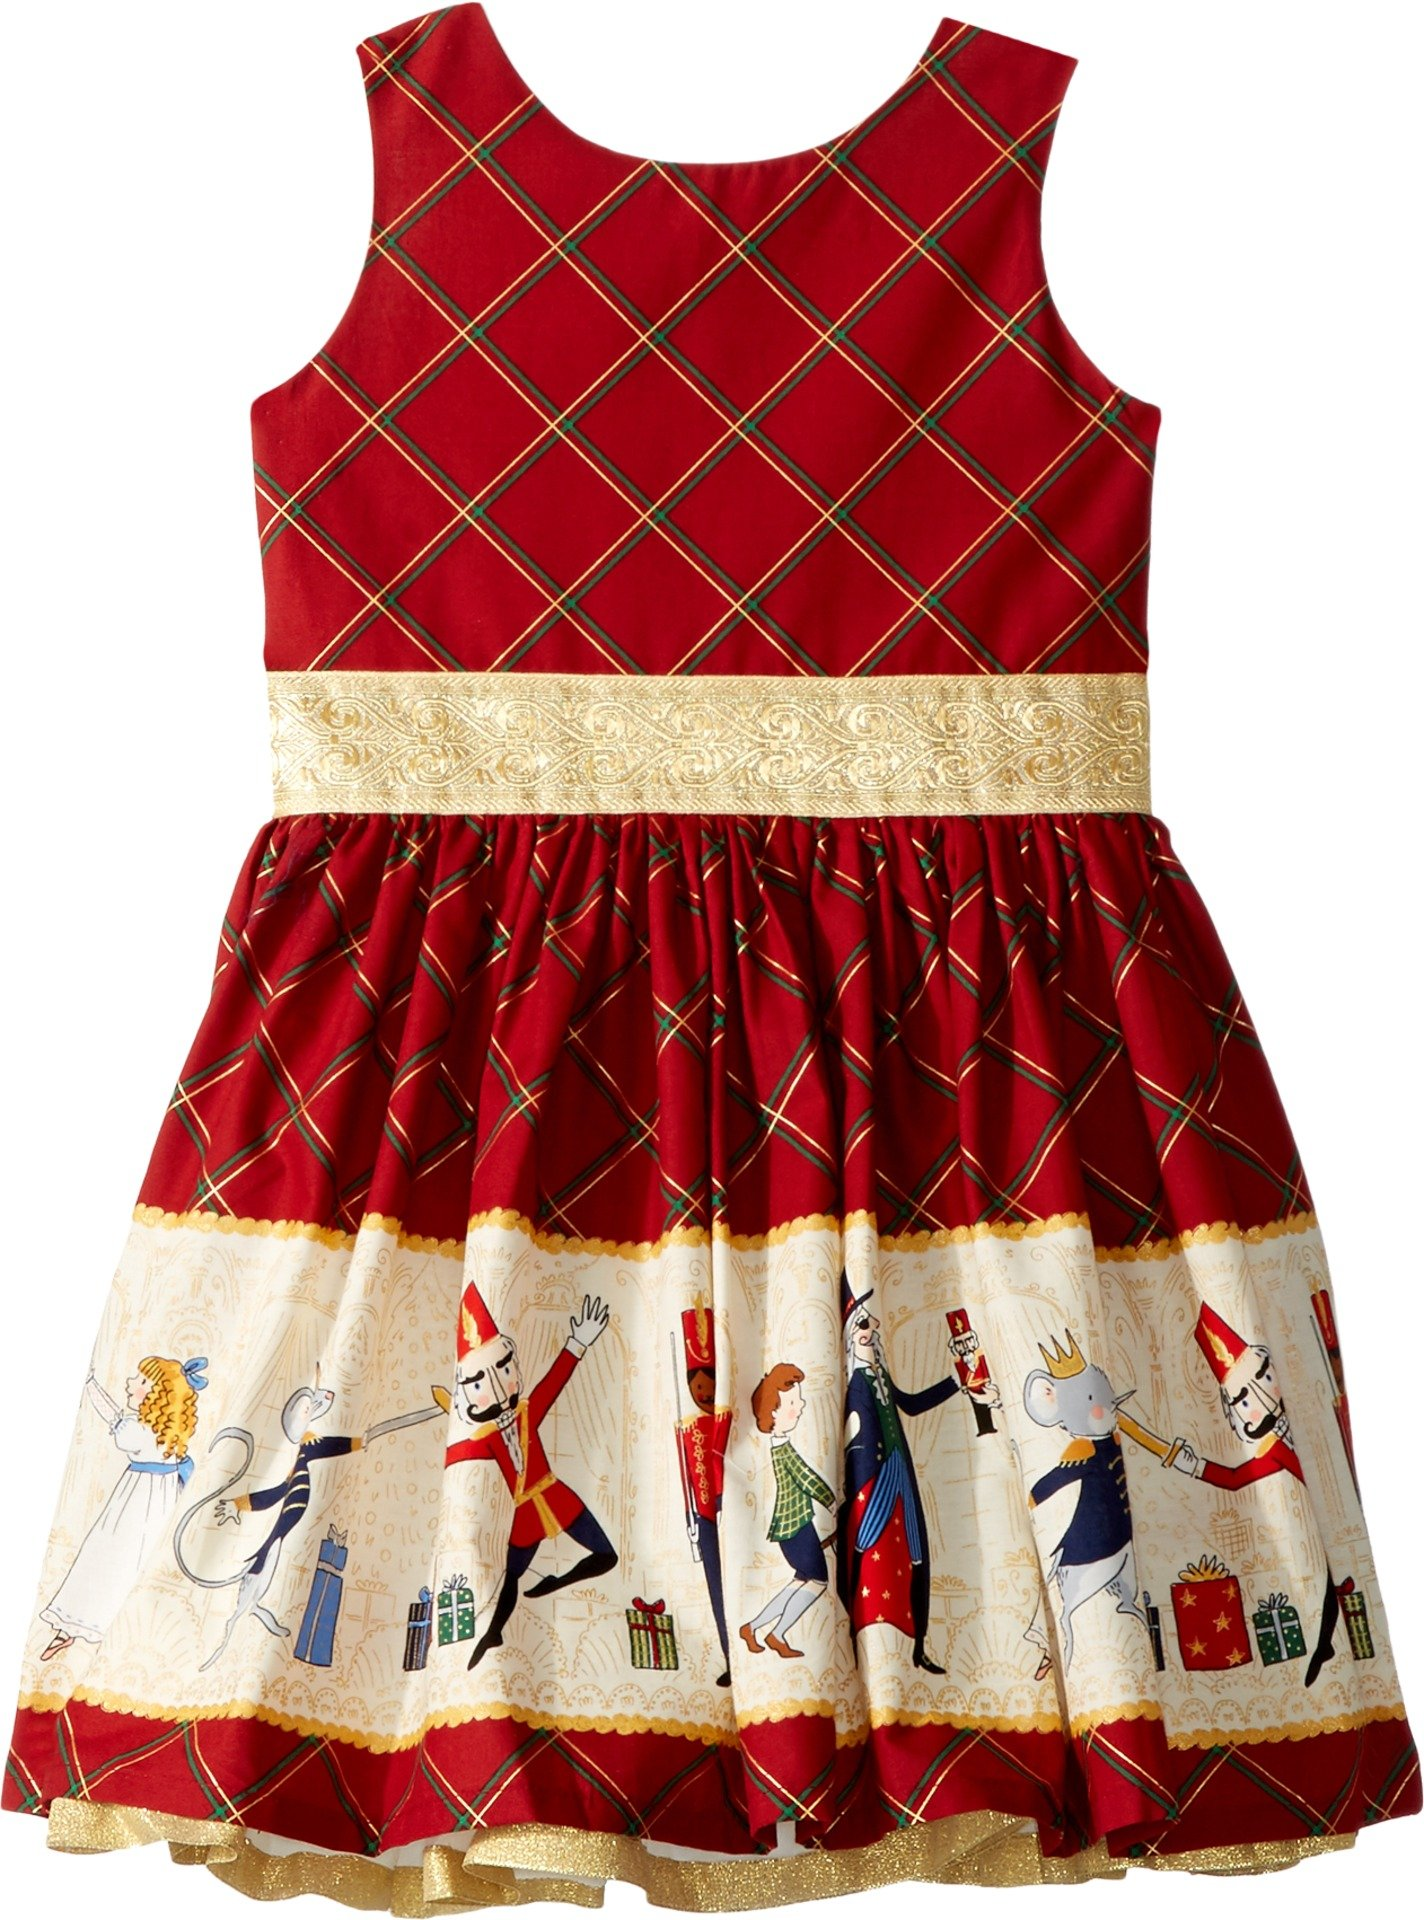 fiveloaves twofish Baby Girl's Nutcracker Party Dress (Toddler/Little Kids/Big Kids) Burgundy 4 by fiveloaves twofish (Image #1)